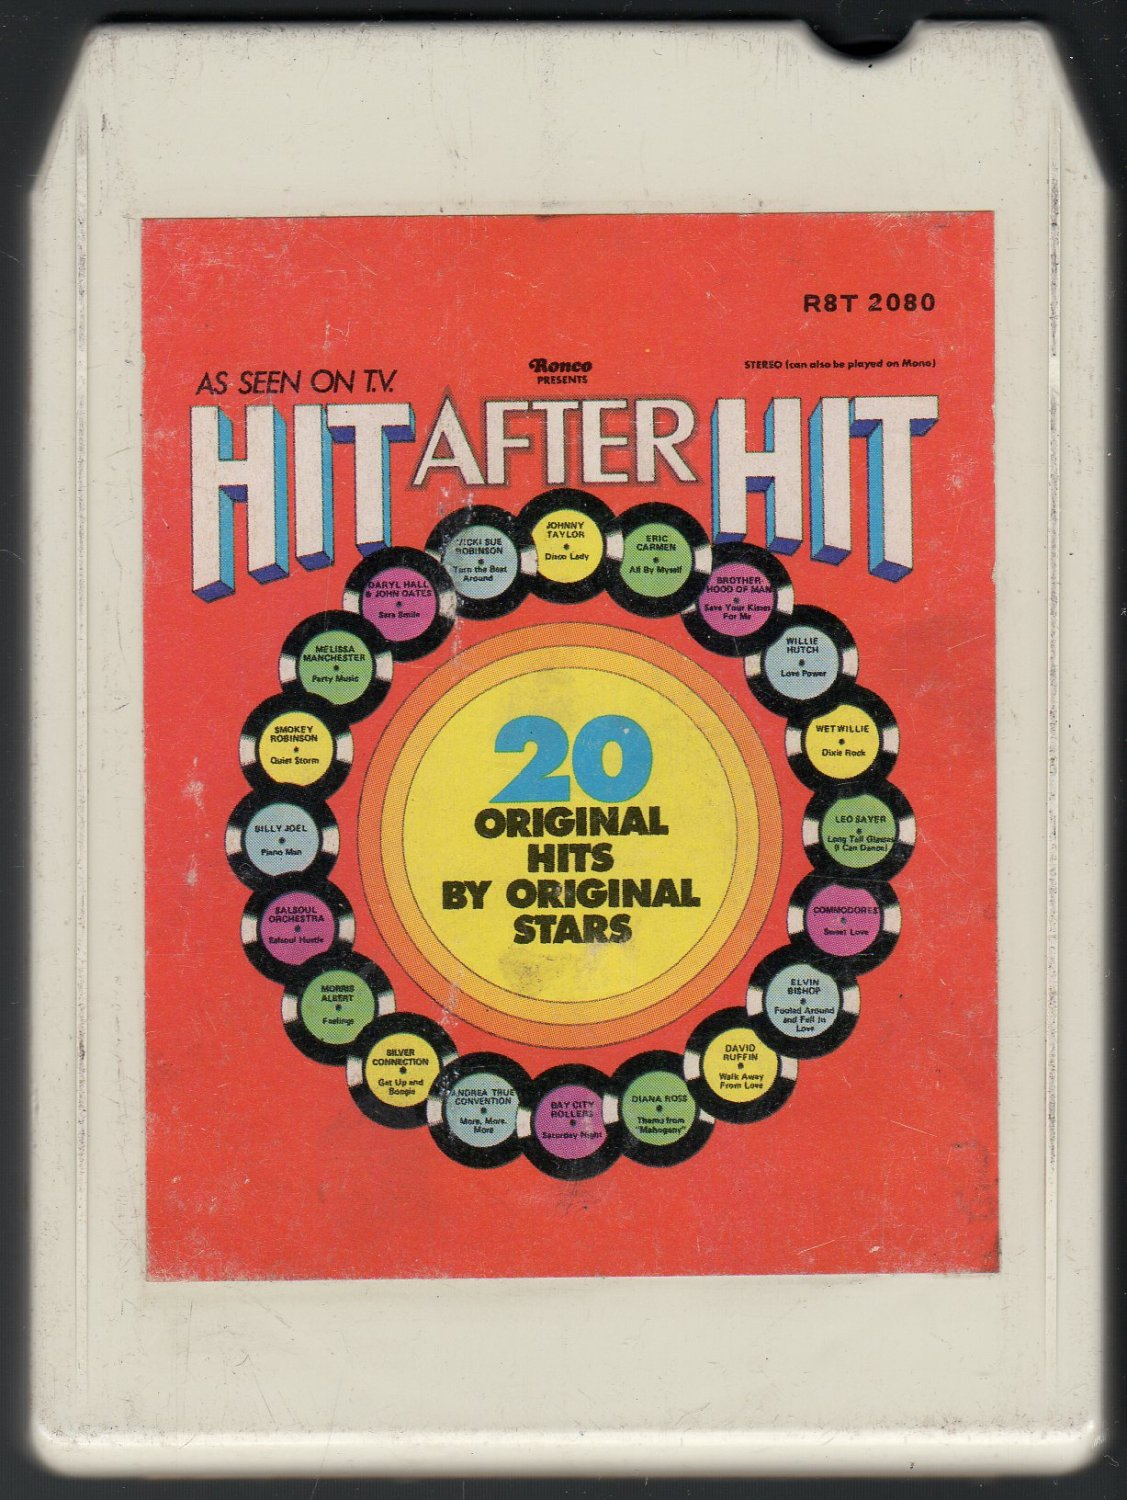 Hit After Hit - Various 1976 RONCO A50 8-track tape